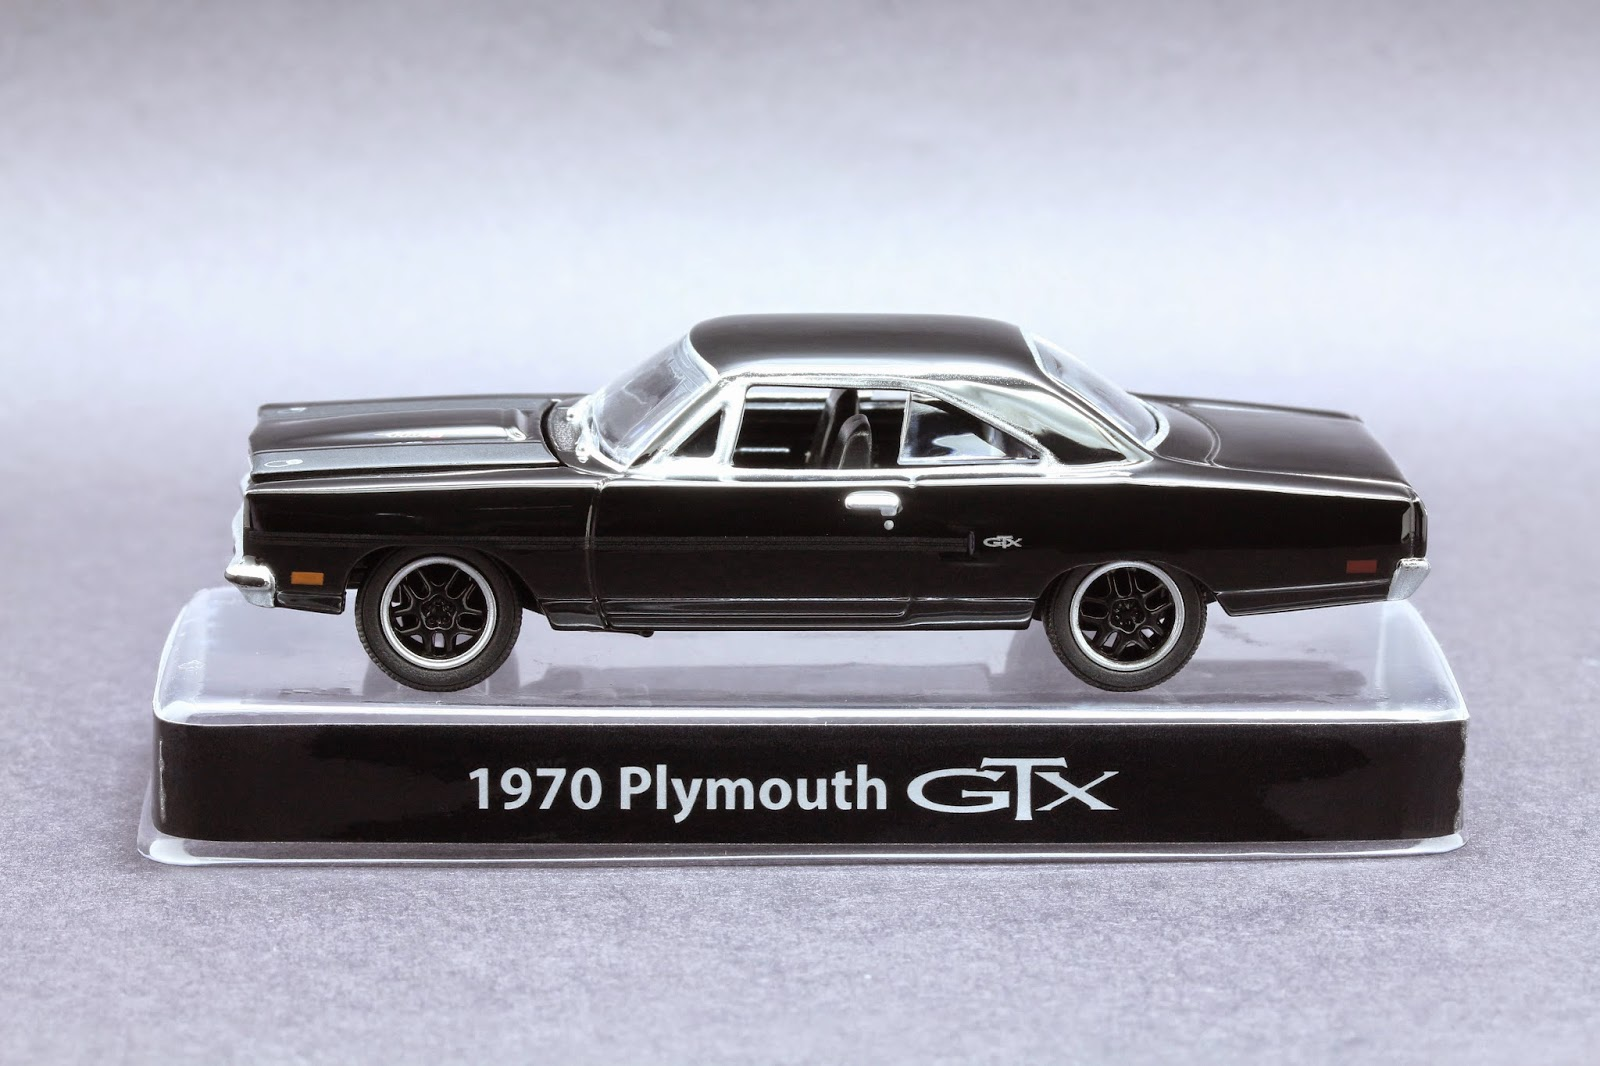 Diecast Hobbist 1970 Plymouth Gtx Ford Crown Victoria 164 Scale From Greenlight Black Bandit Toysrus Exclusive Mopar Edition